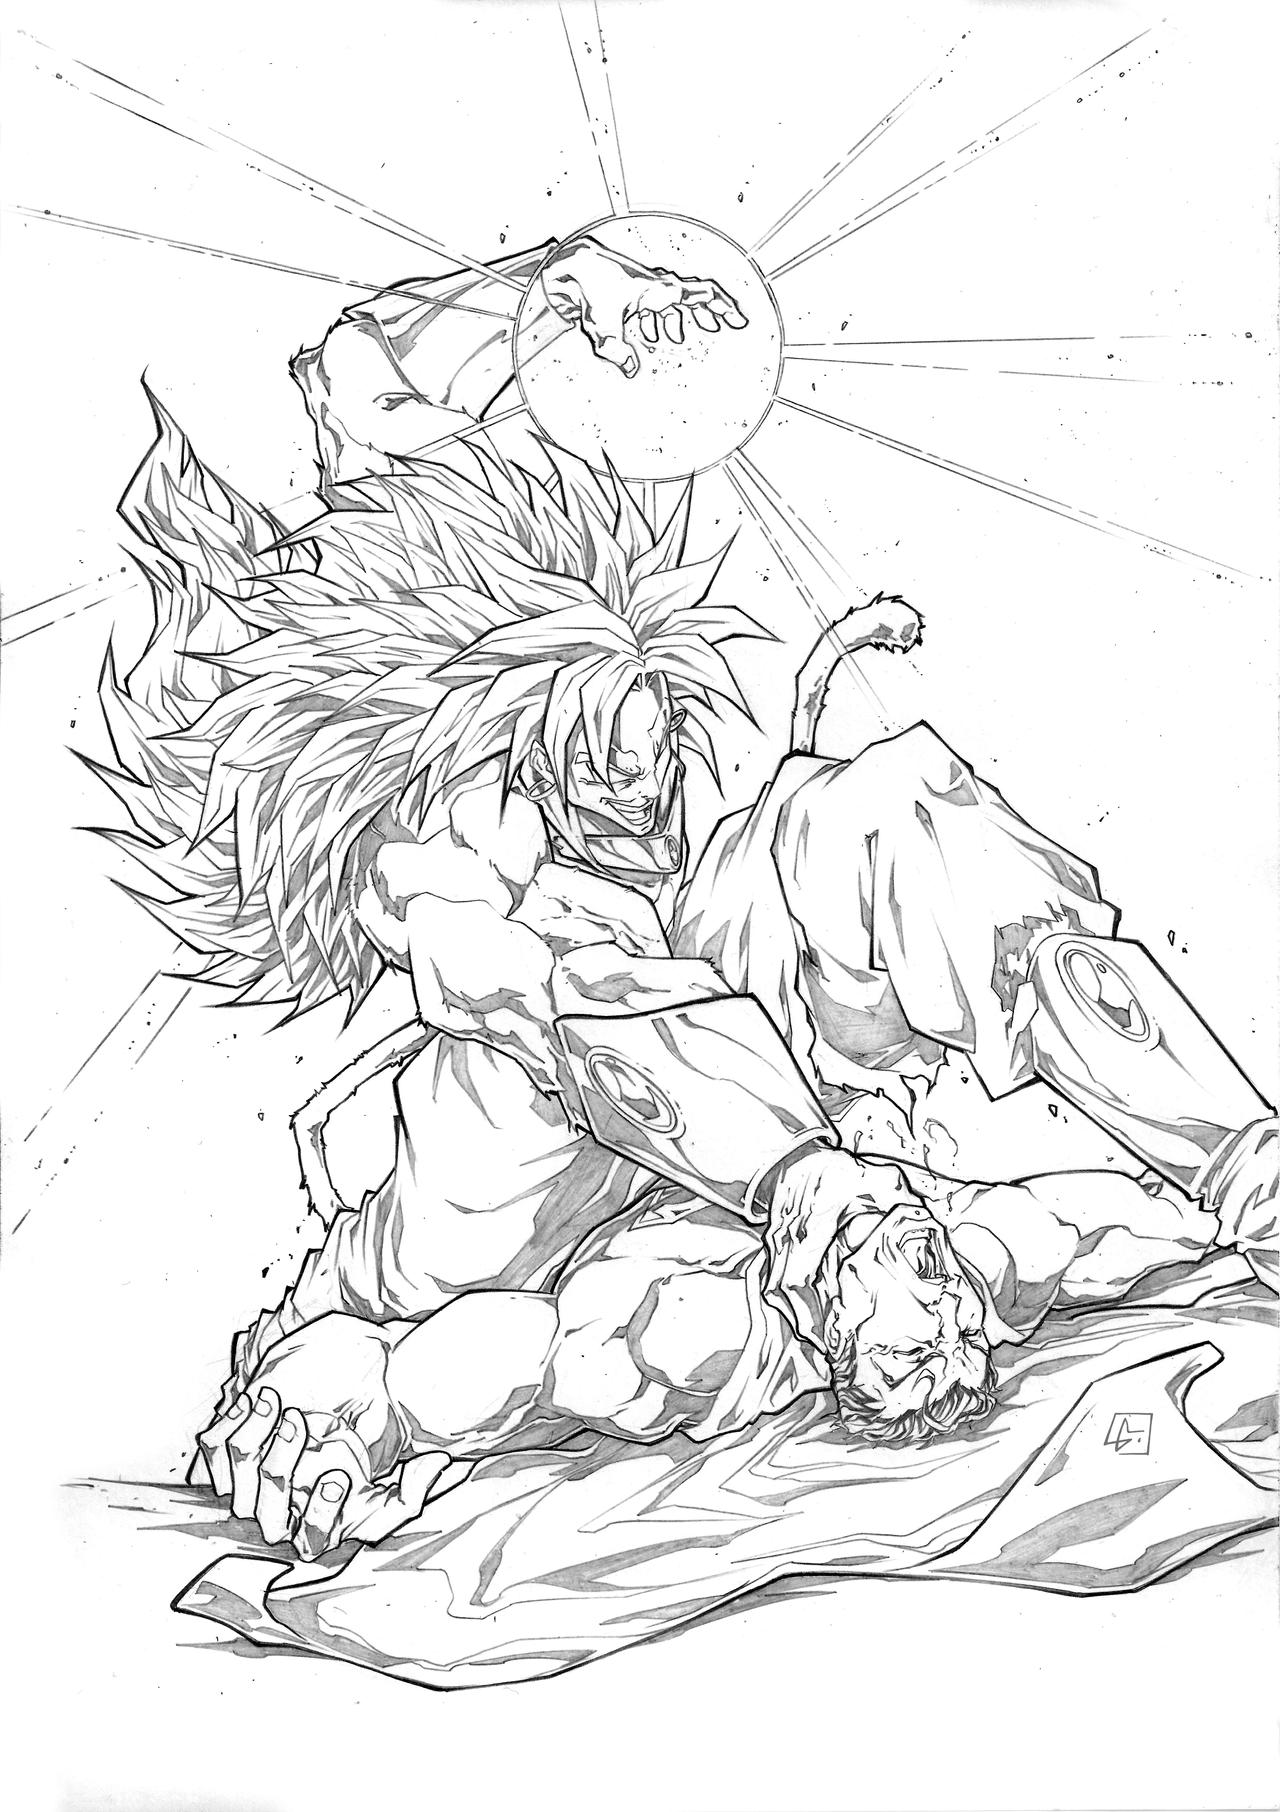 ssj5 broly vs superman by marvelmania on deviantart